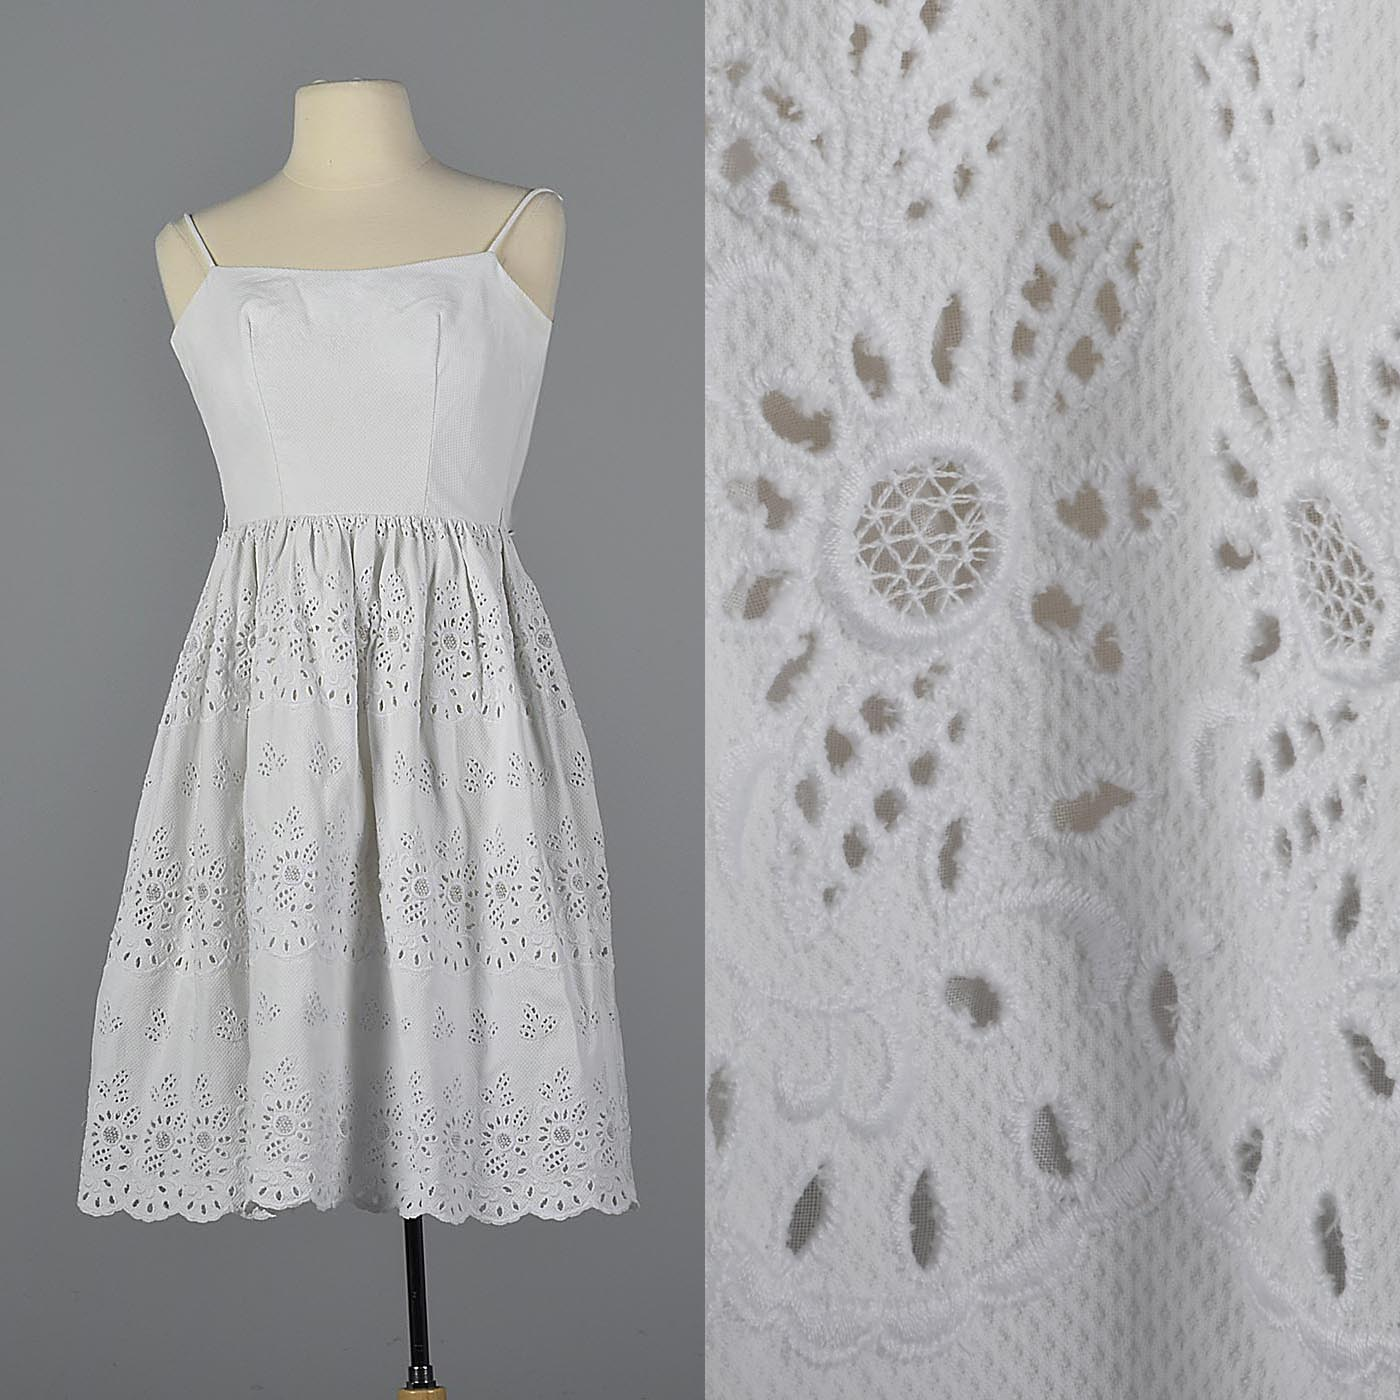 c7f9ee3a9a XXS 1950s Lanz White Eyelet Wedding Dress Fit and Flare Dress Sleeveless  Summer Dress Wasp Waist Hourglass Vintage 50s